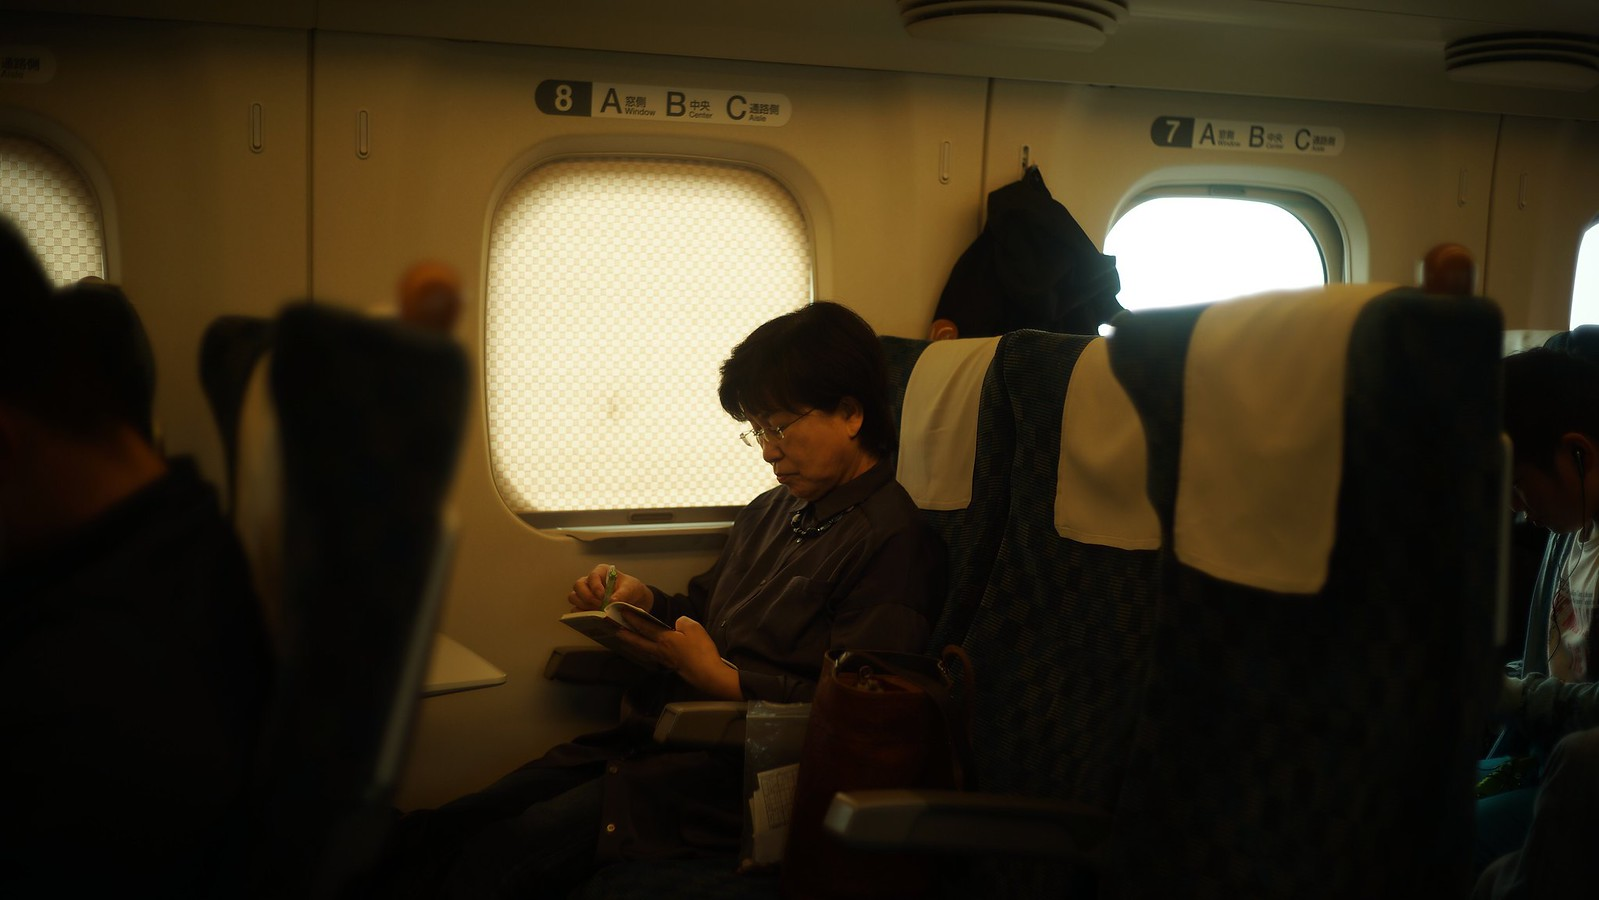 On the Shinkansen #SonyA7 #Voigtlander40mm #foto #japan15 #Shinkansen